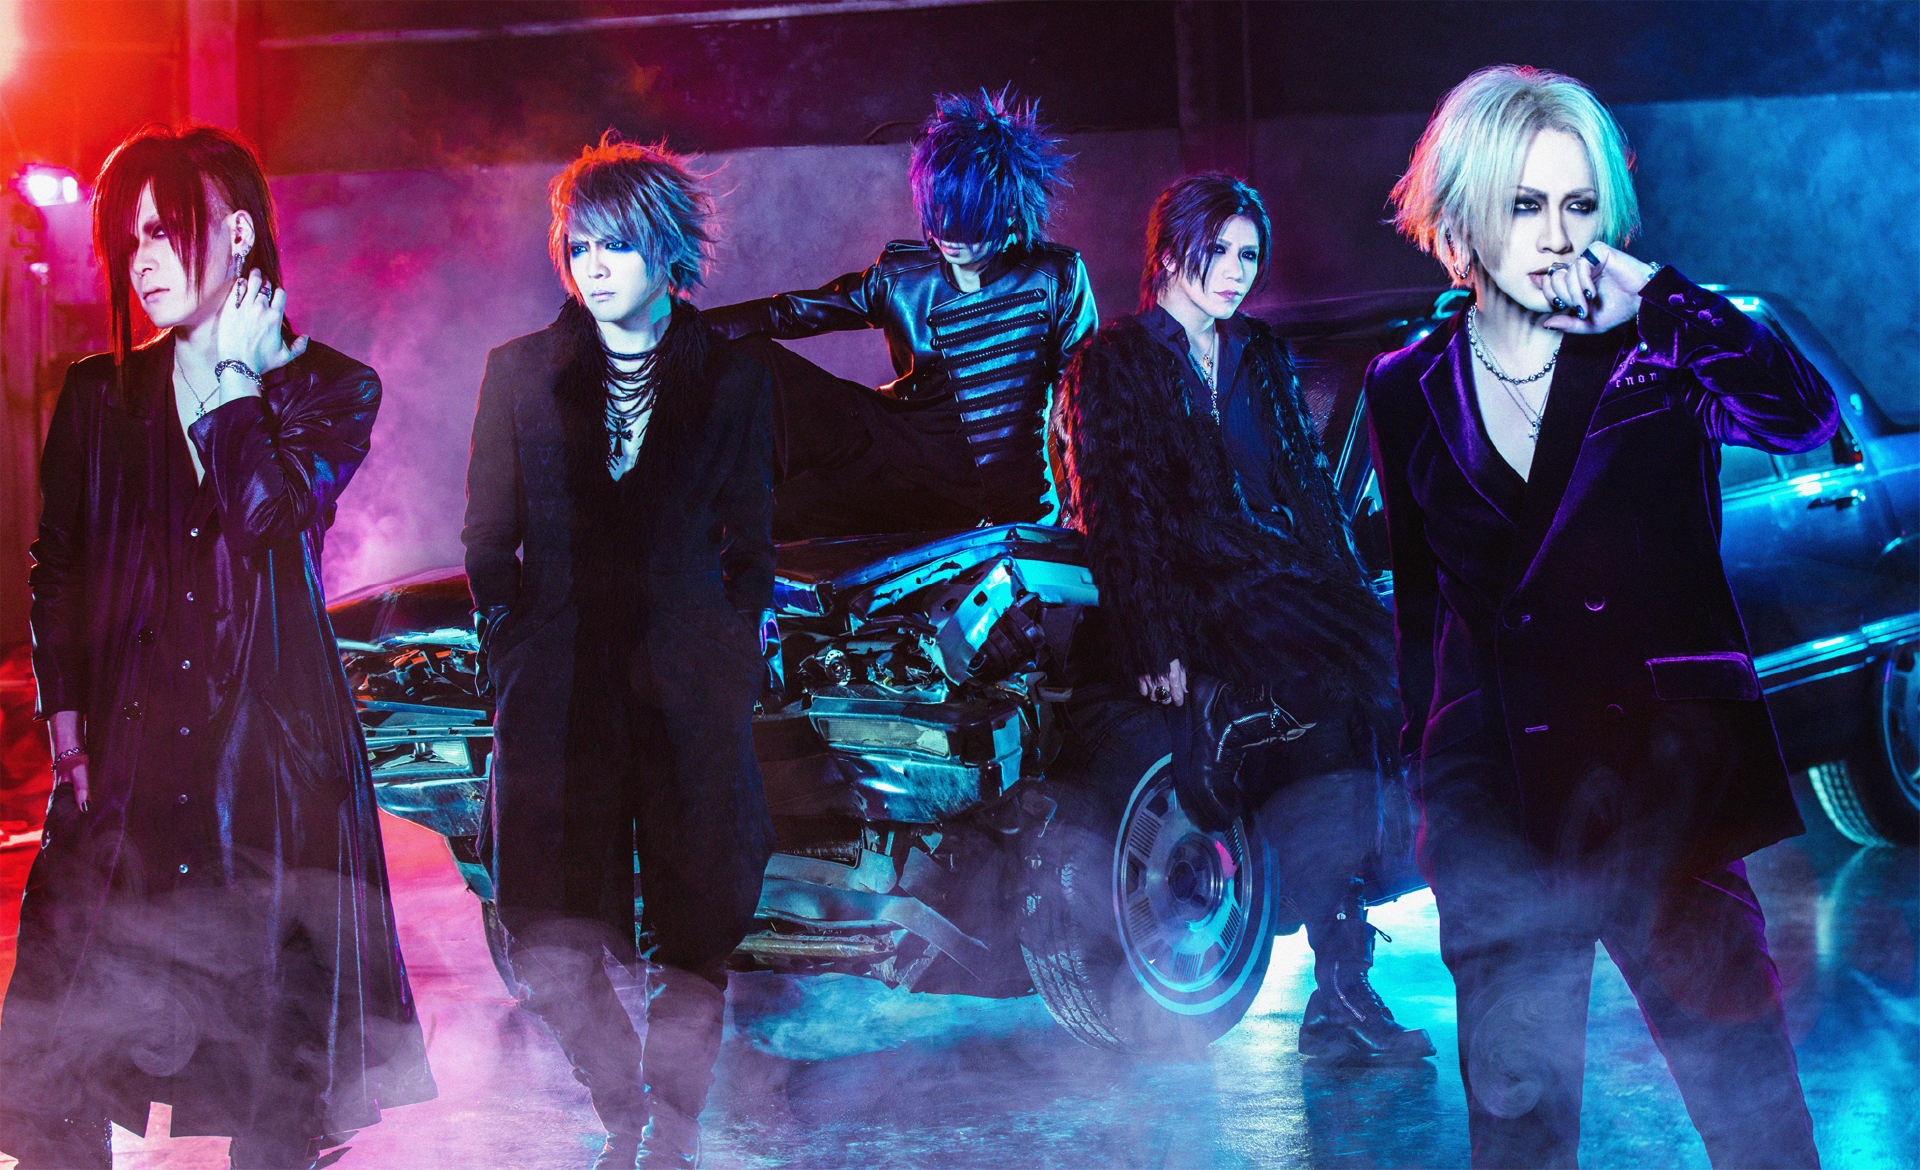 THE GAZETTE leaves PS COMPANY; what does this mean for the label?